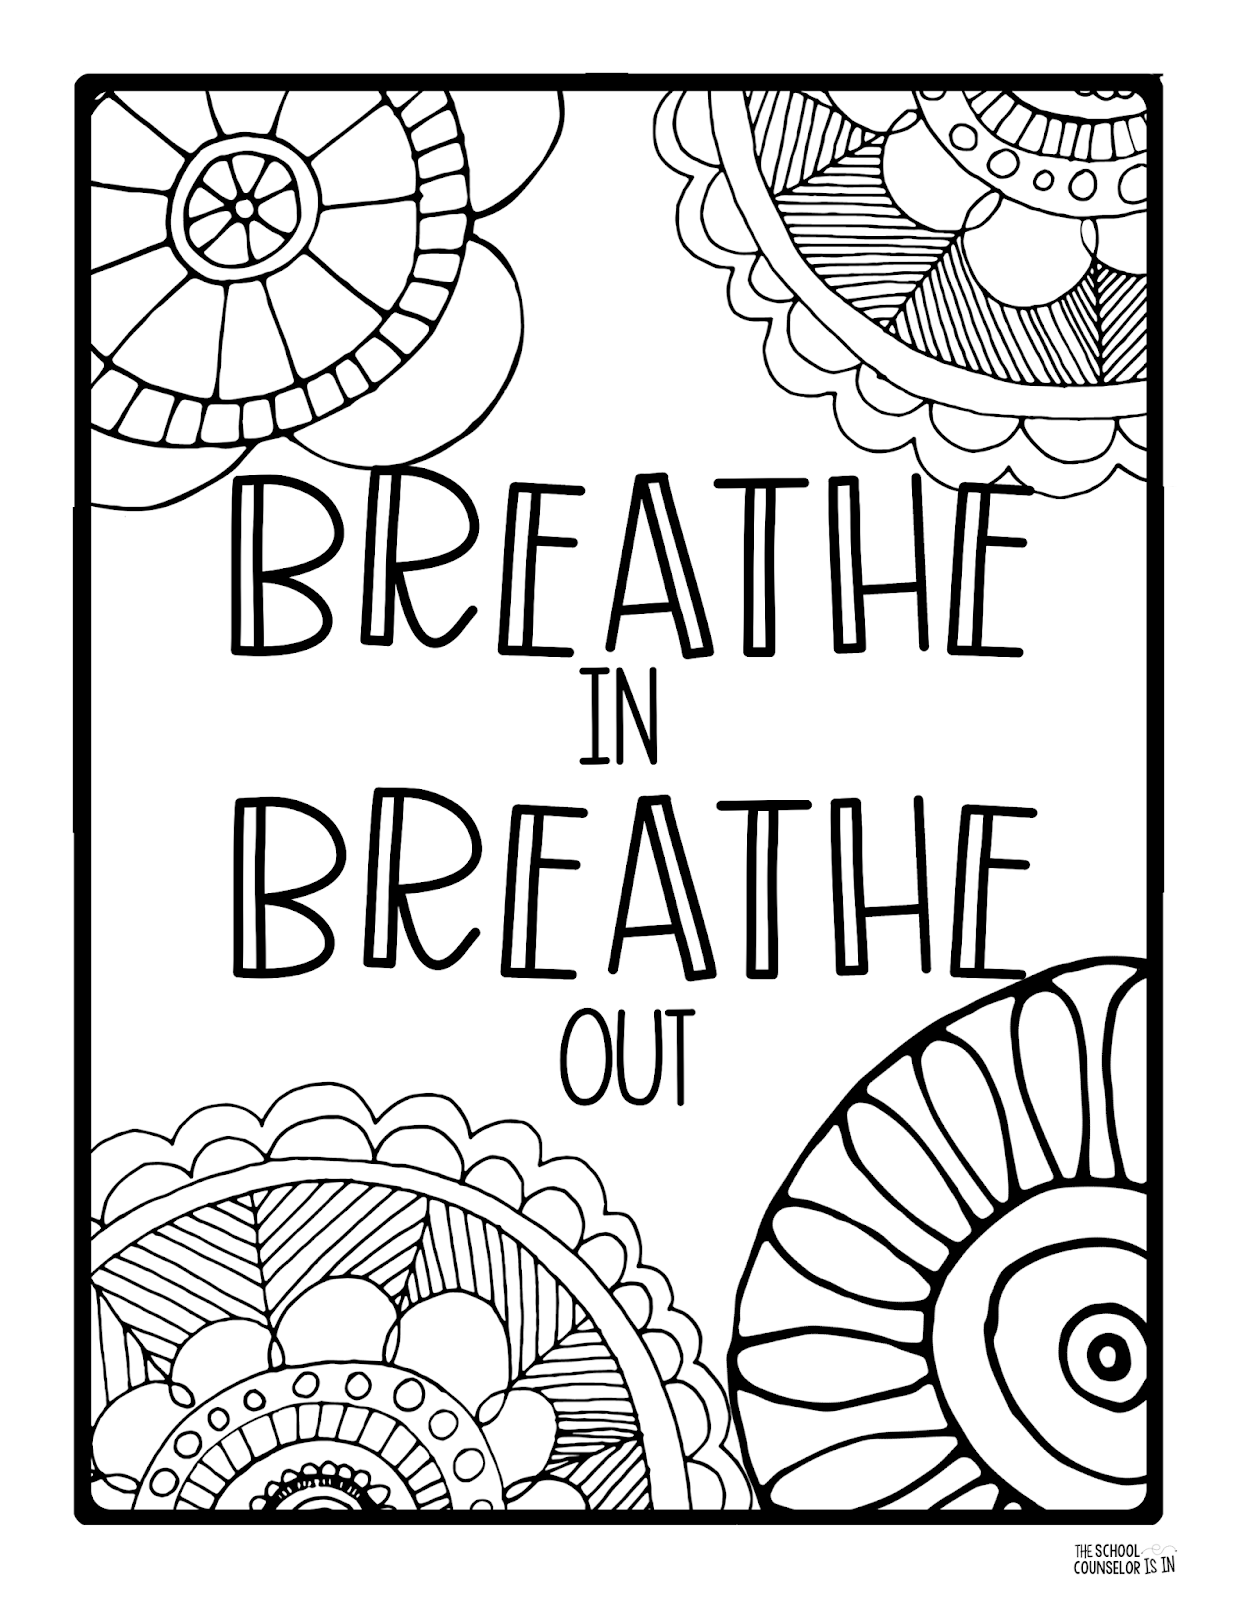 mindfulness colouring pages the school counselor is in mindfulness coloring sheets pages colouring mindfulness